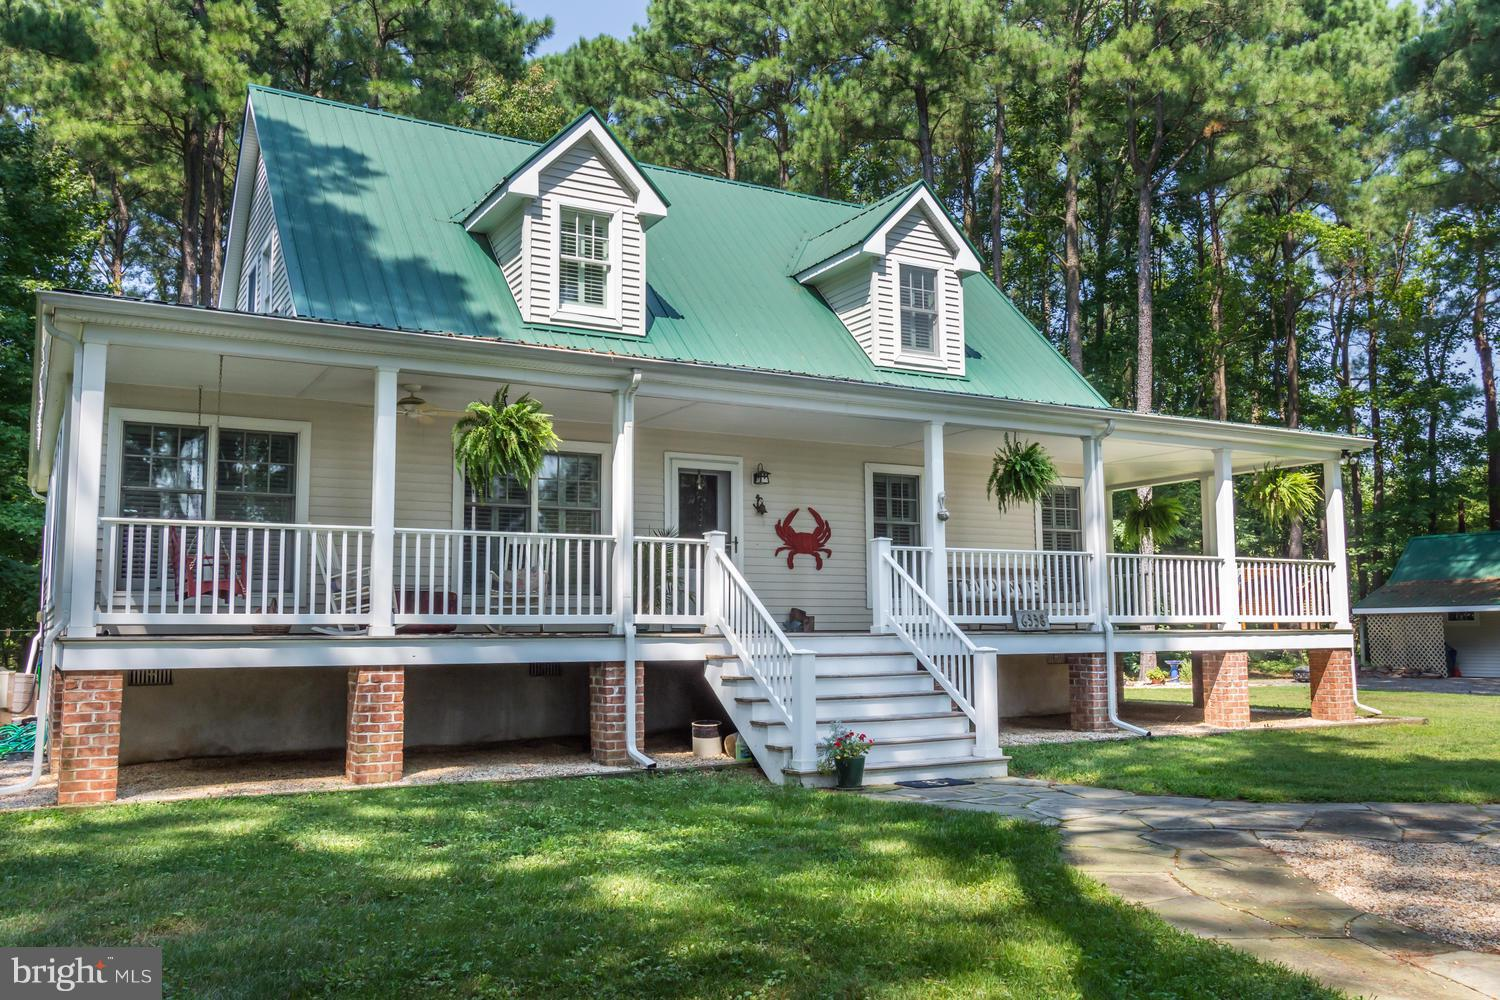 6338 MIDDLE POINT ROAD, NEAVITT, MD 21652